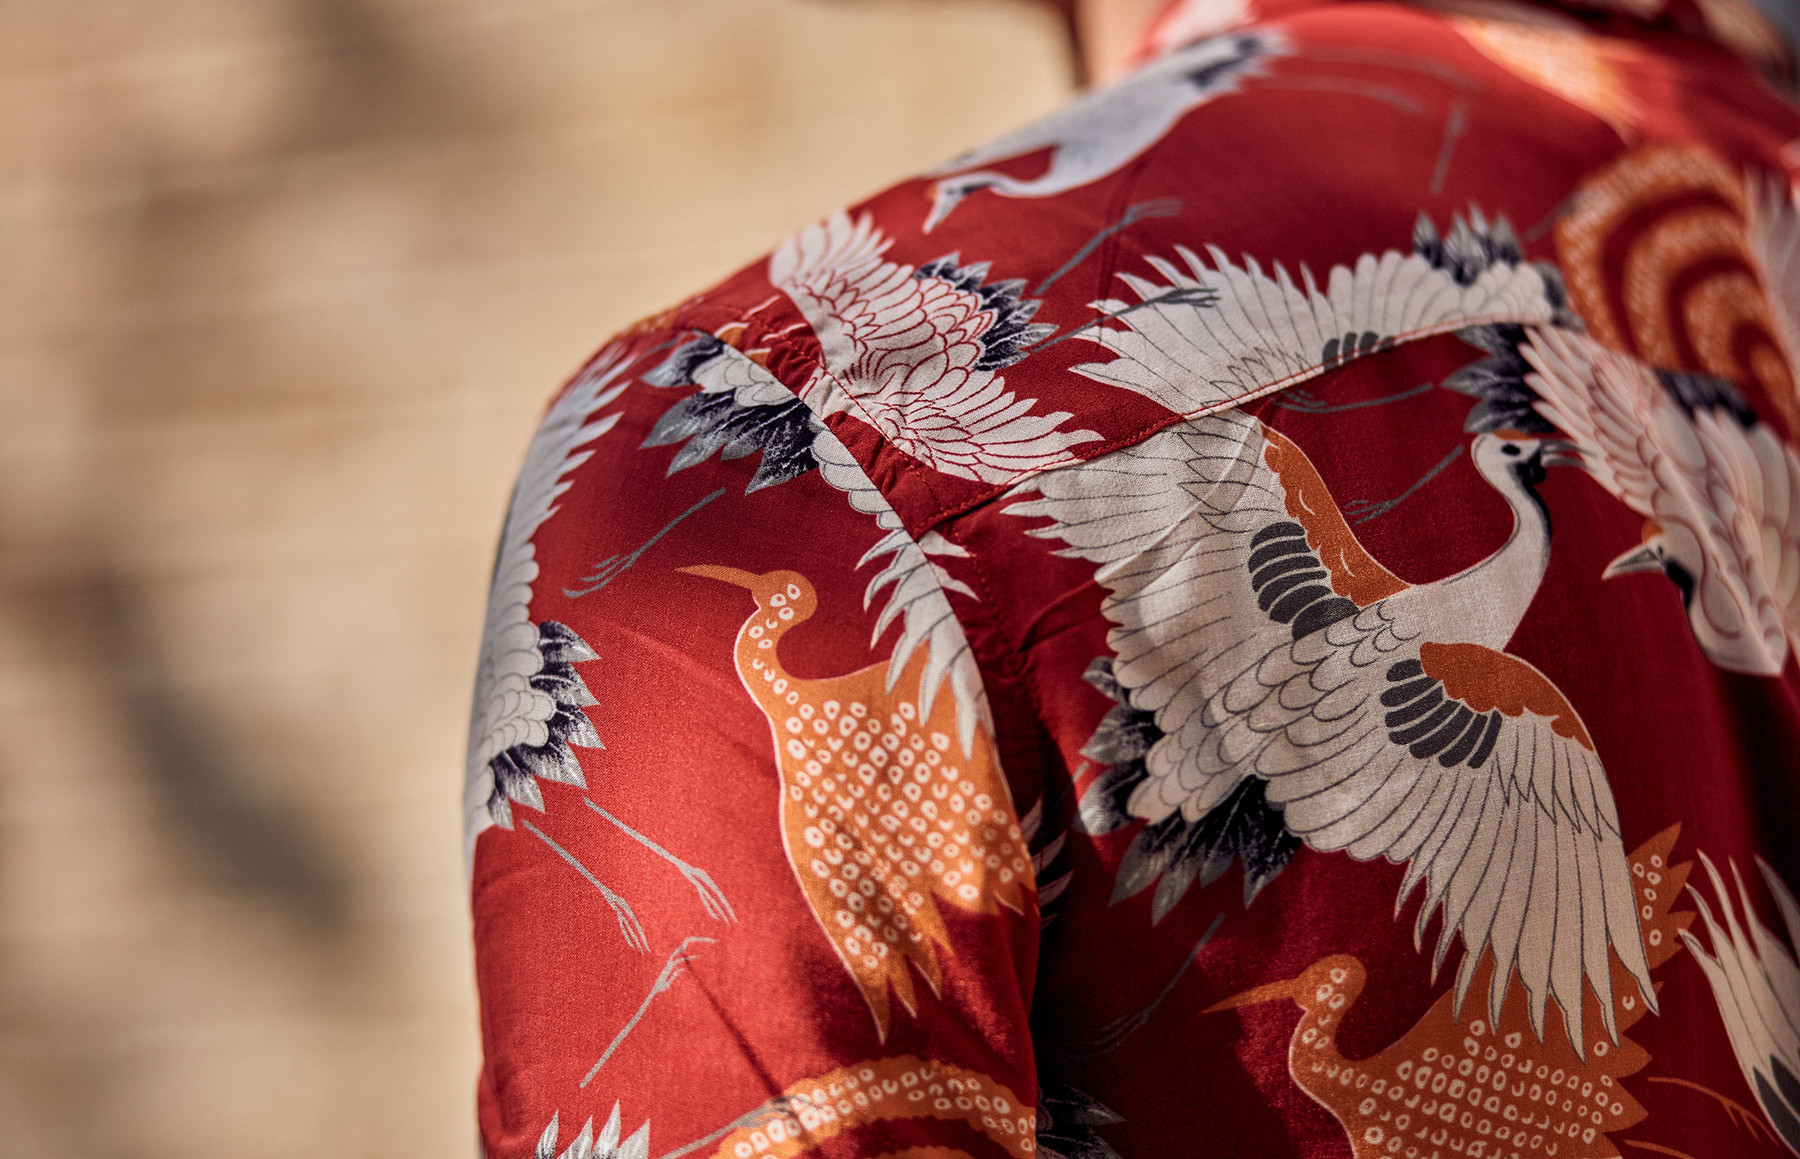 Four ways to wear a printed shirt